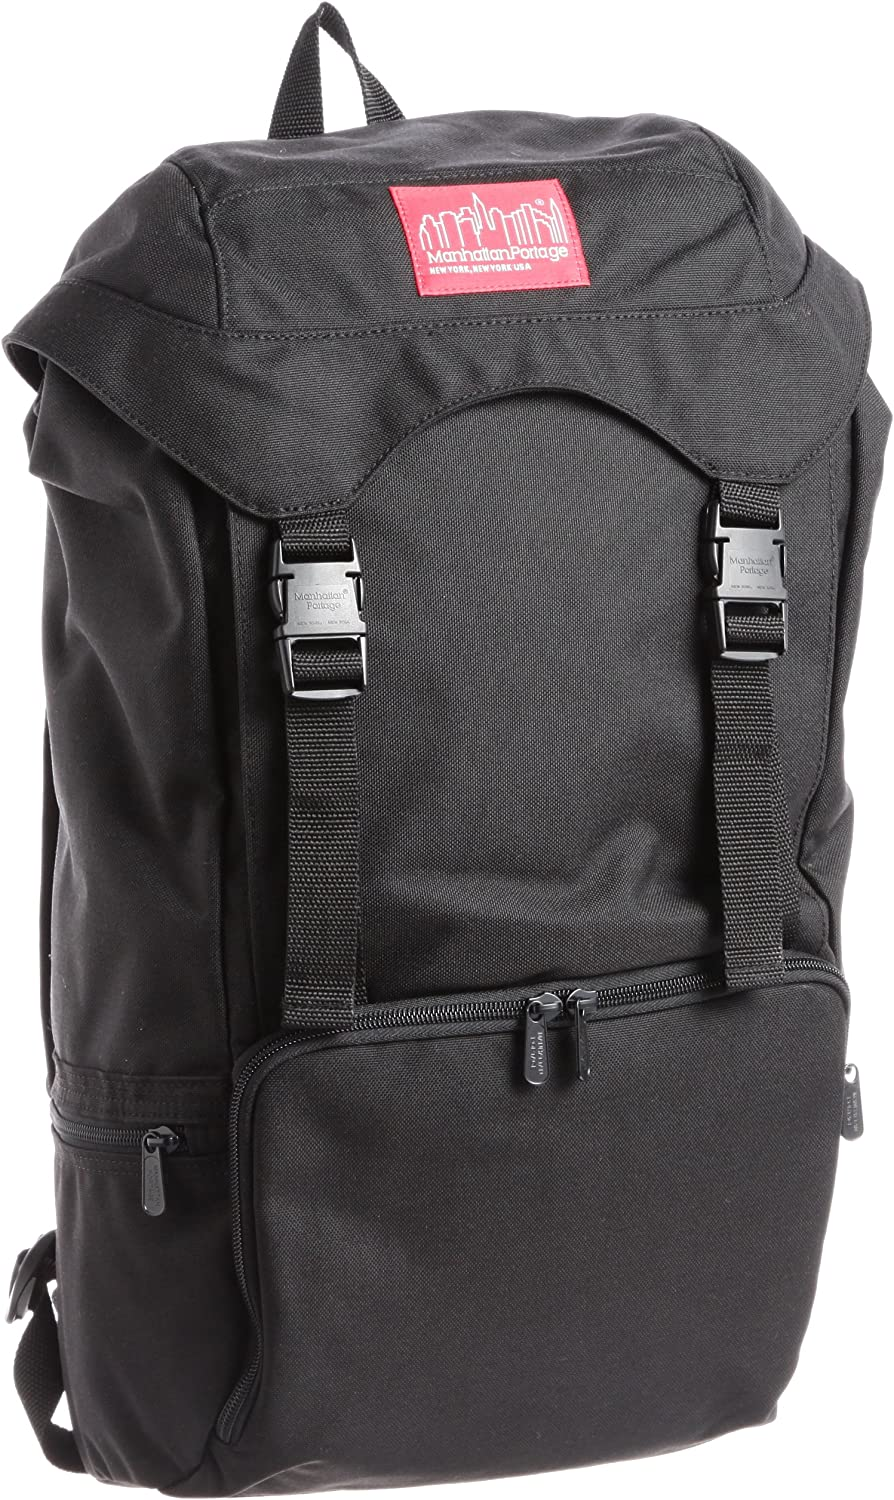 Manhattan Portage Cordura Hiker Backpack